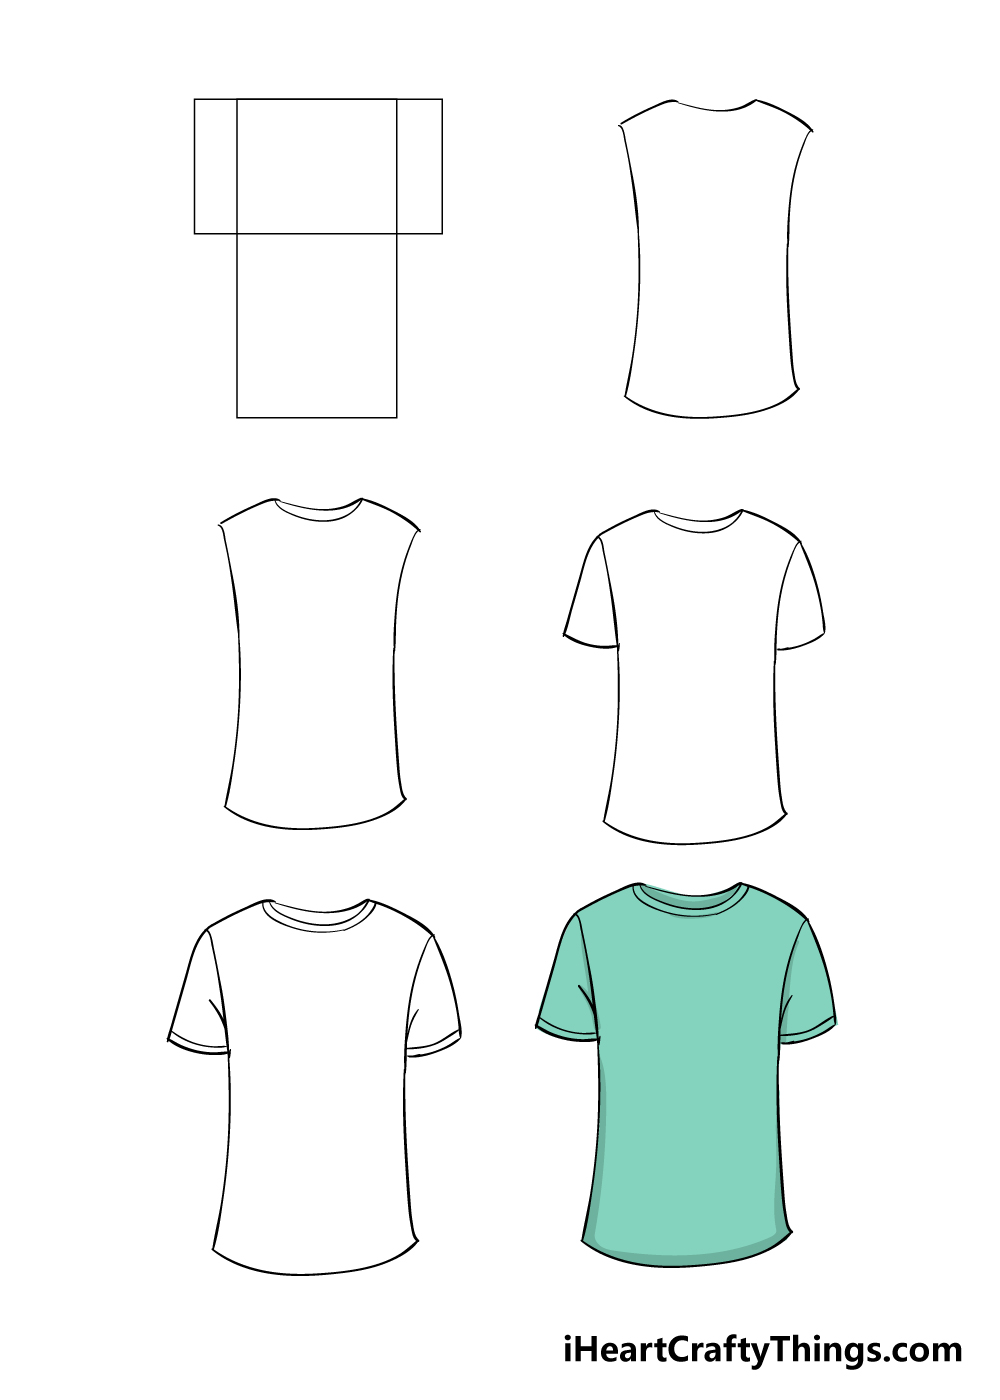 how to draw shirt in 6 steps